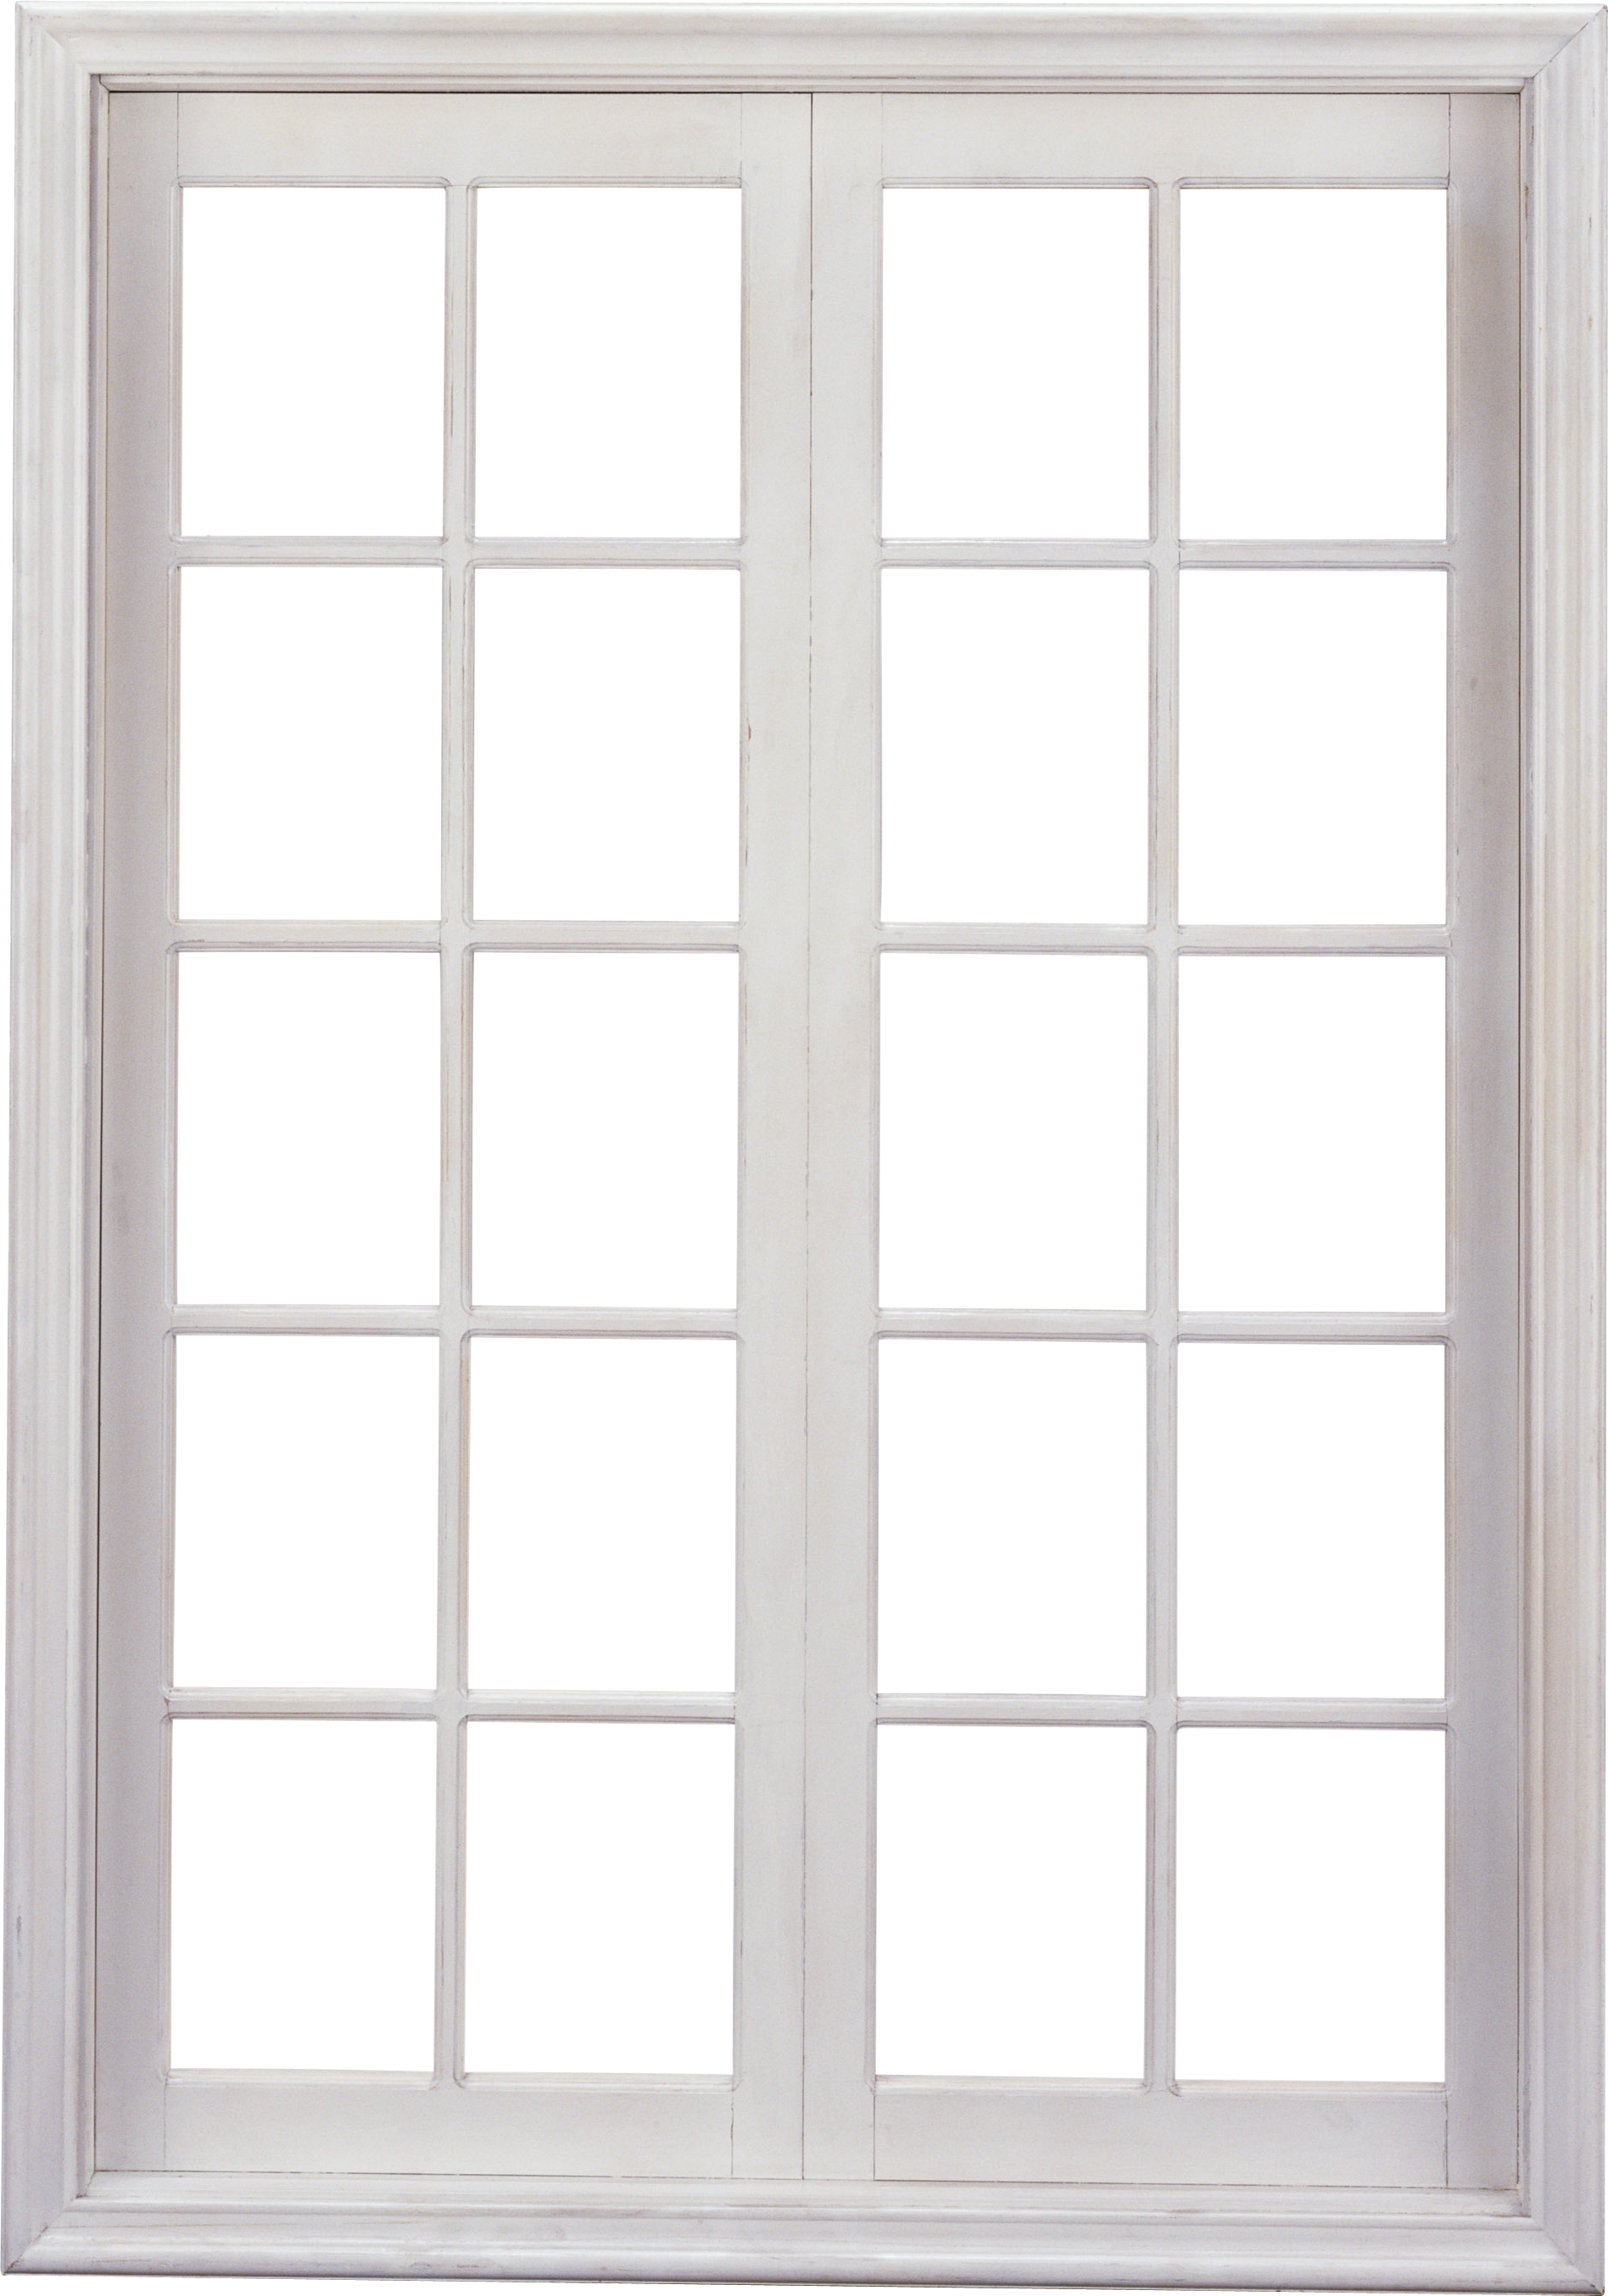 Glass window png. Images free download open